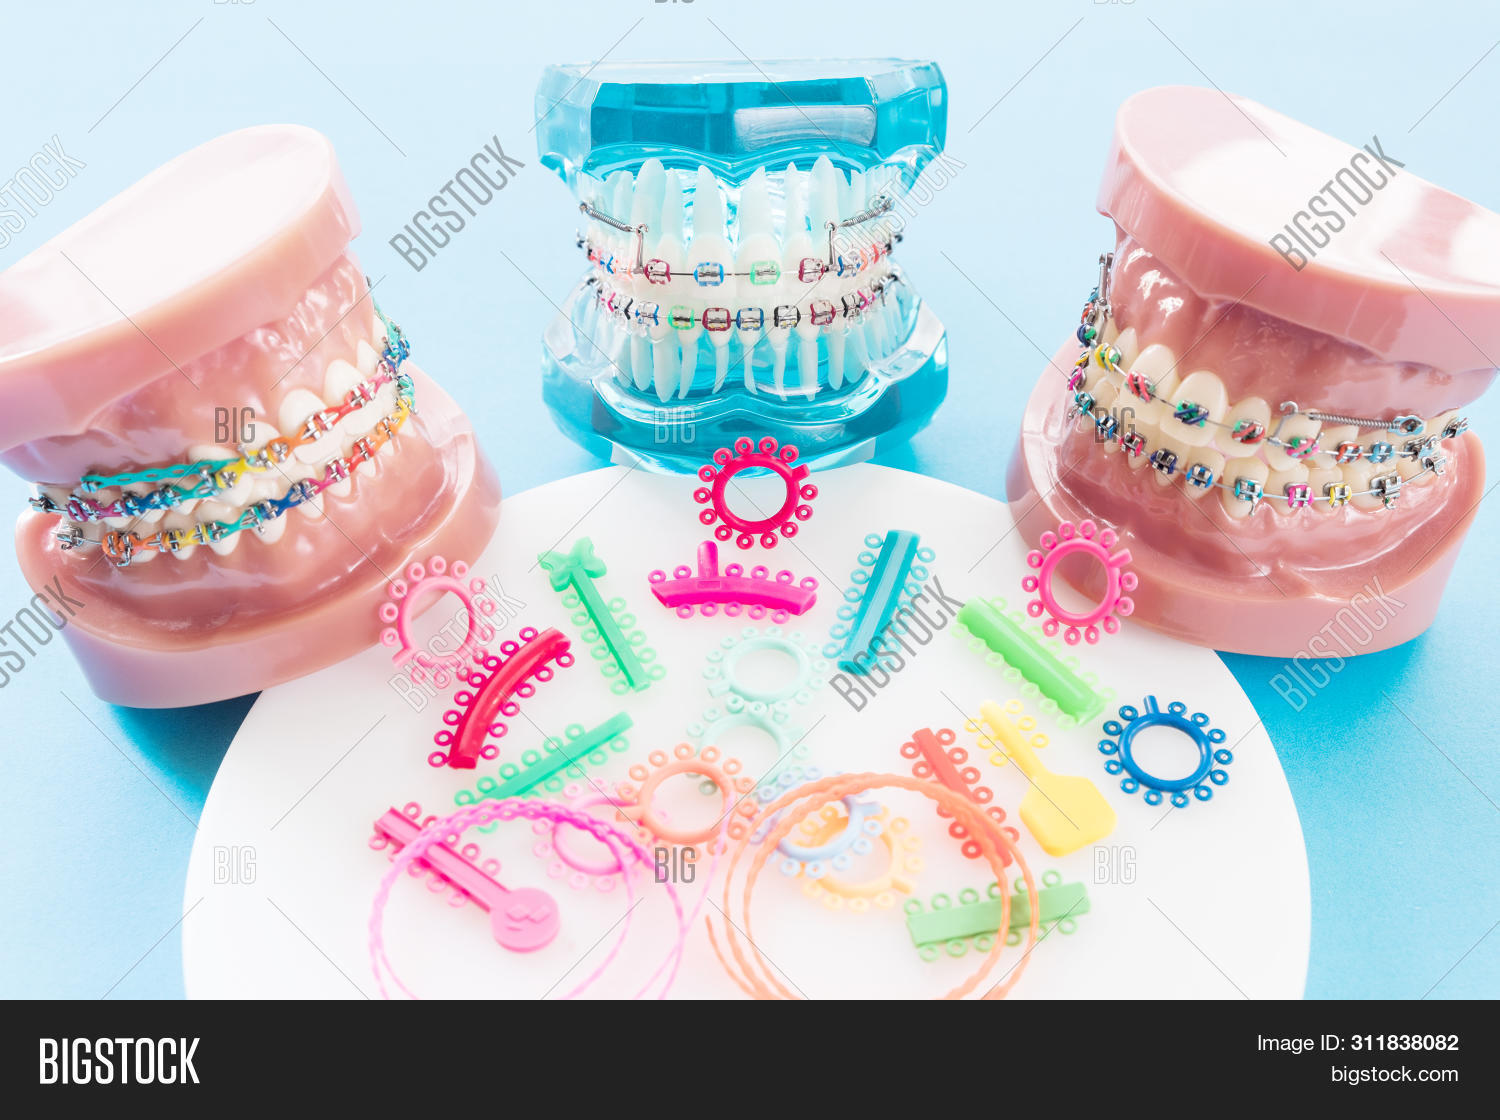 background,braces,bracket,care,check,clean,clinic,closeup,concept,cost,demonstration,dental,dentist,dentistry,denture,device,equipment,health,healthcare,hygiene,insurance,isolated,jaw,lab,laboratory,mask,medical,medicine,metal,mirror,model,mouth,o-ring.,object,oral,orthodontic,orthodontist,teeth,tool,tooth,traditional,treat,treatment,white,wired